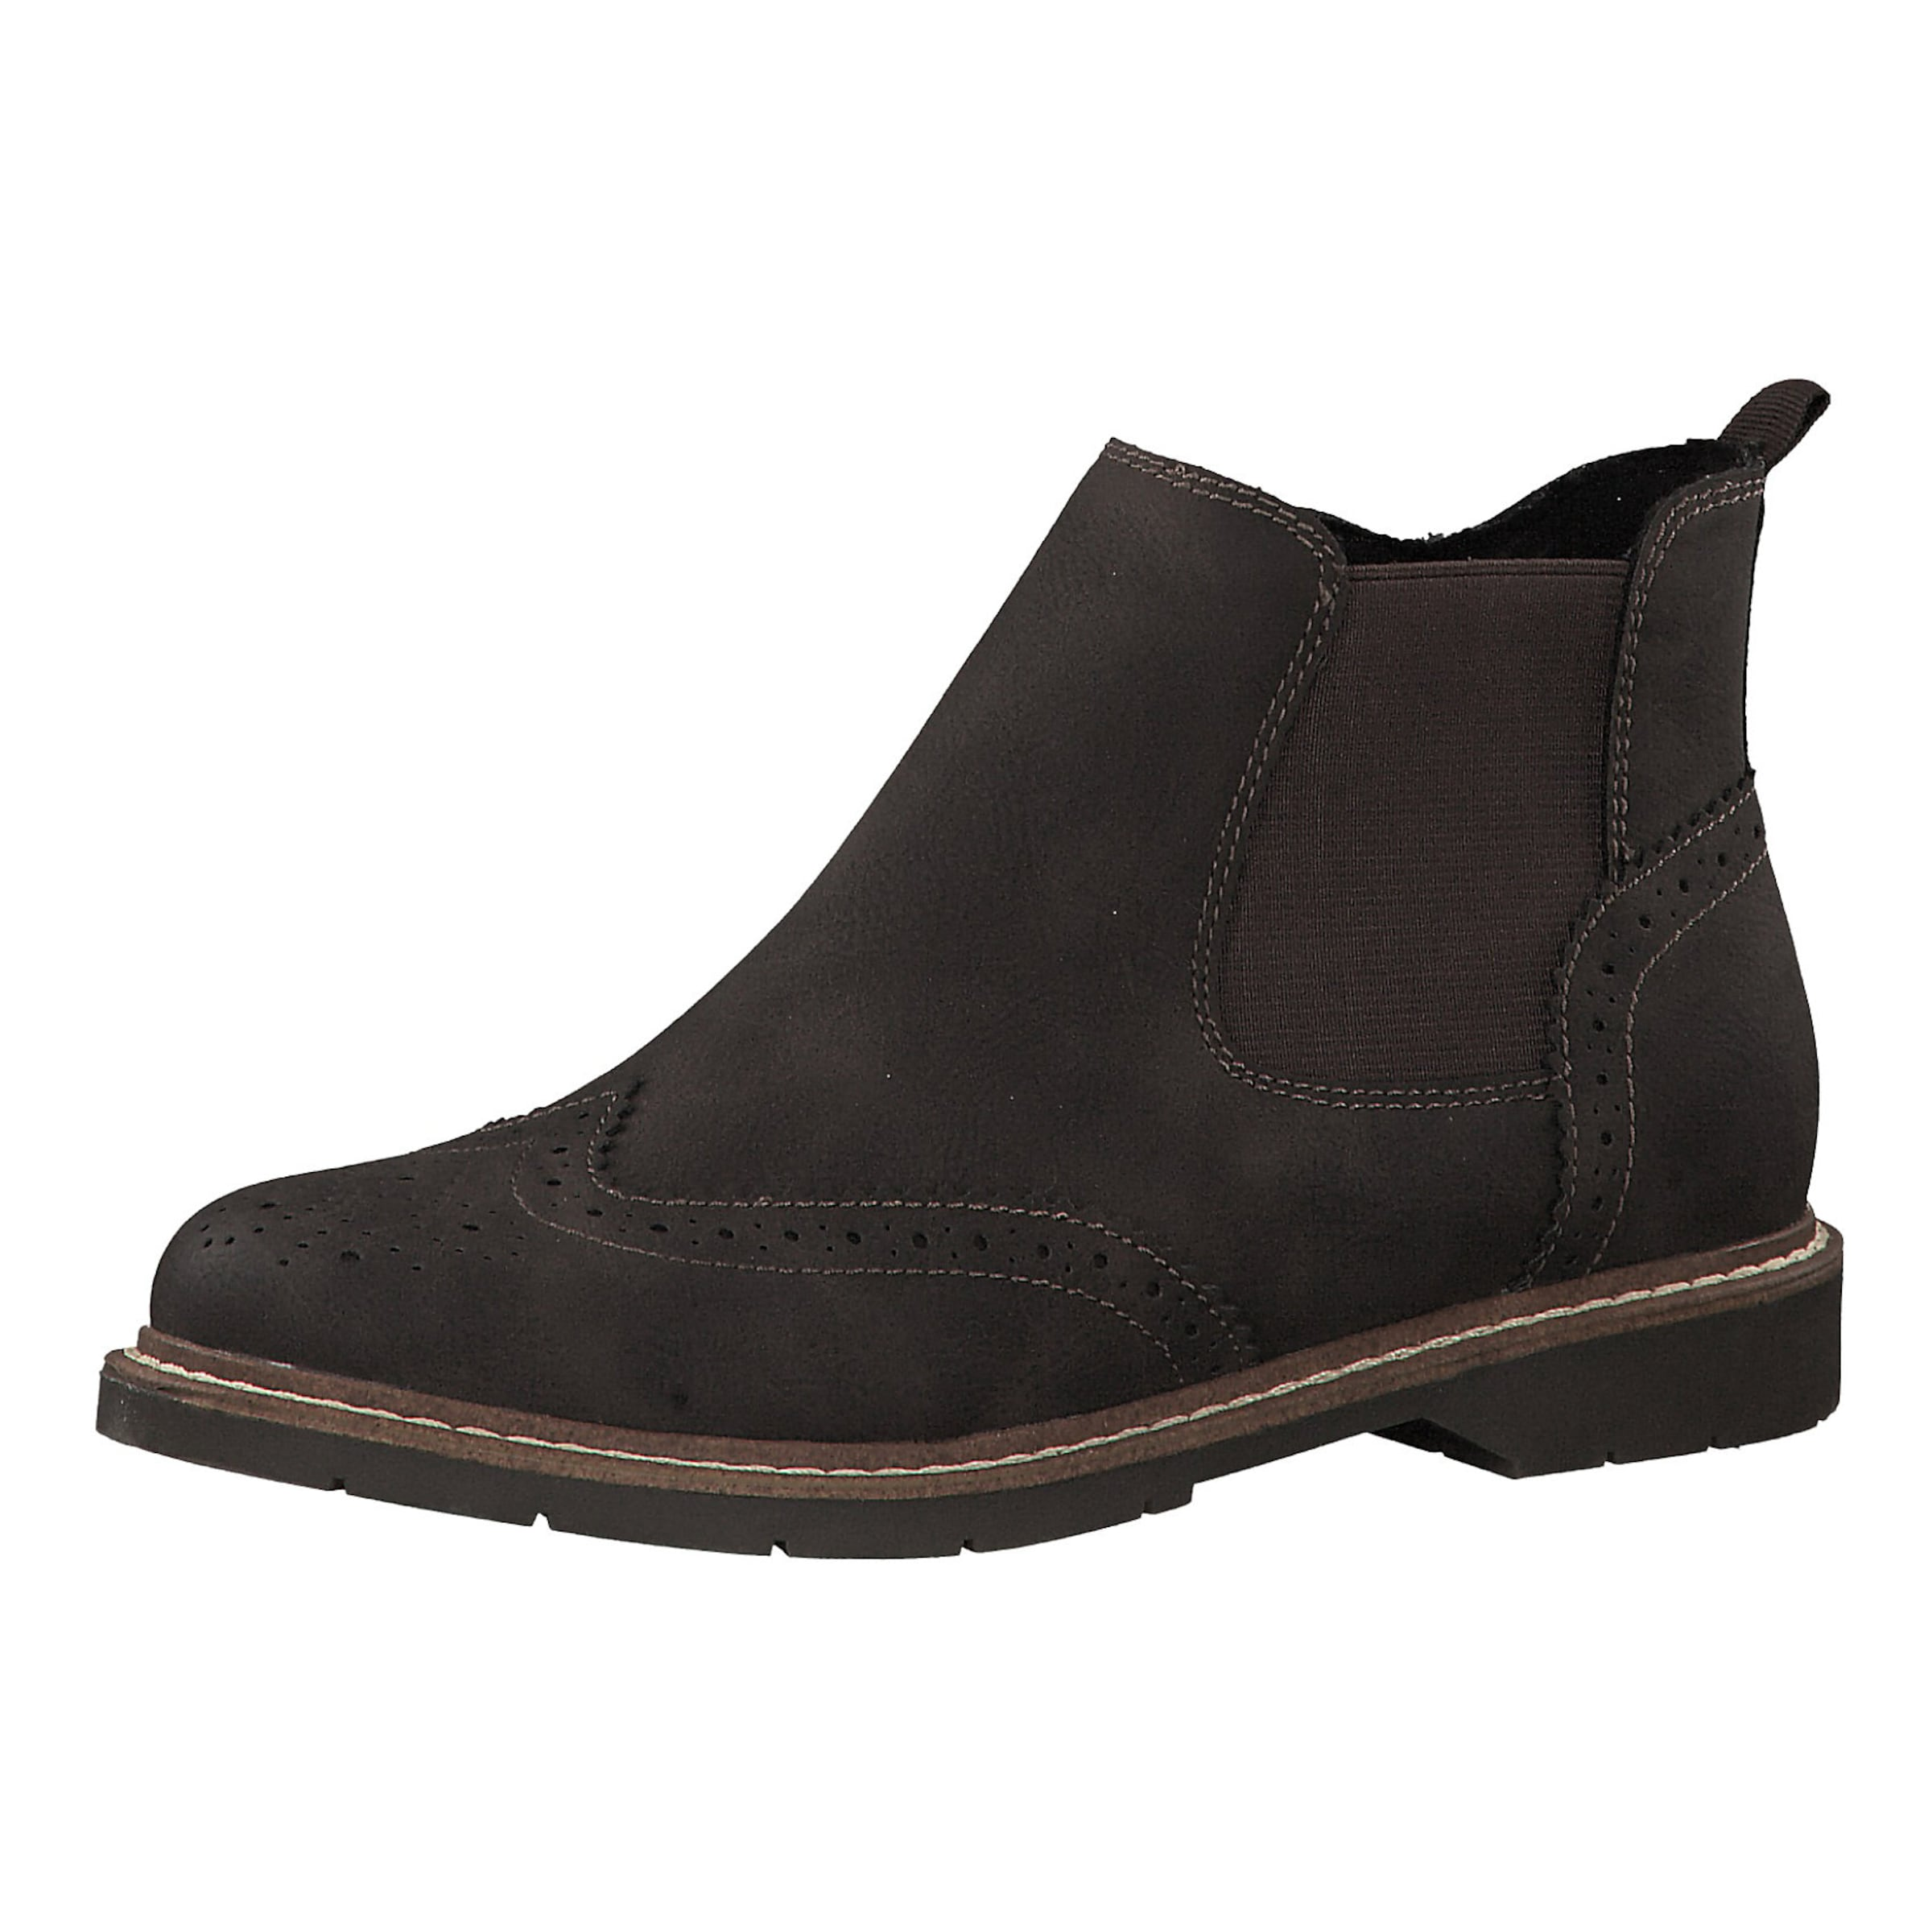 S.Oliver Chelsea Stiefel in dunkelbraun